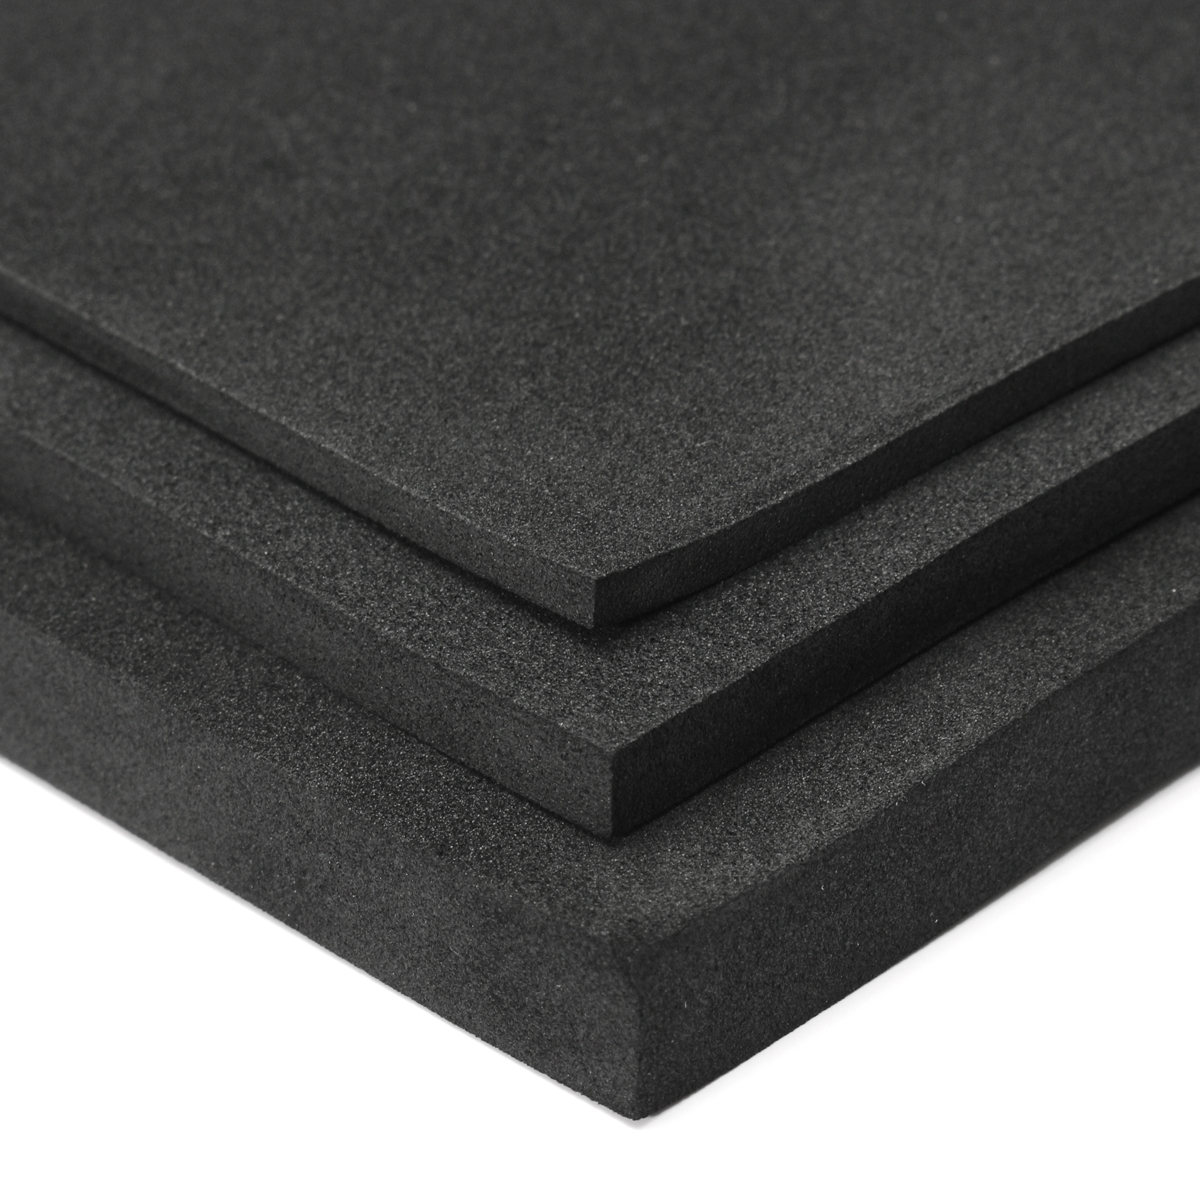 200x200mm ESD Antistatic Pin Insertion High Density Foam 3/5/10mm | Alex NLD